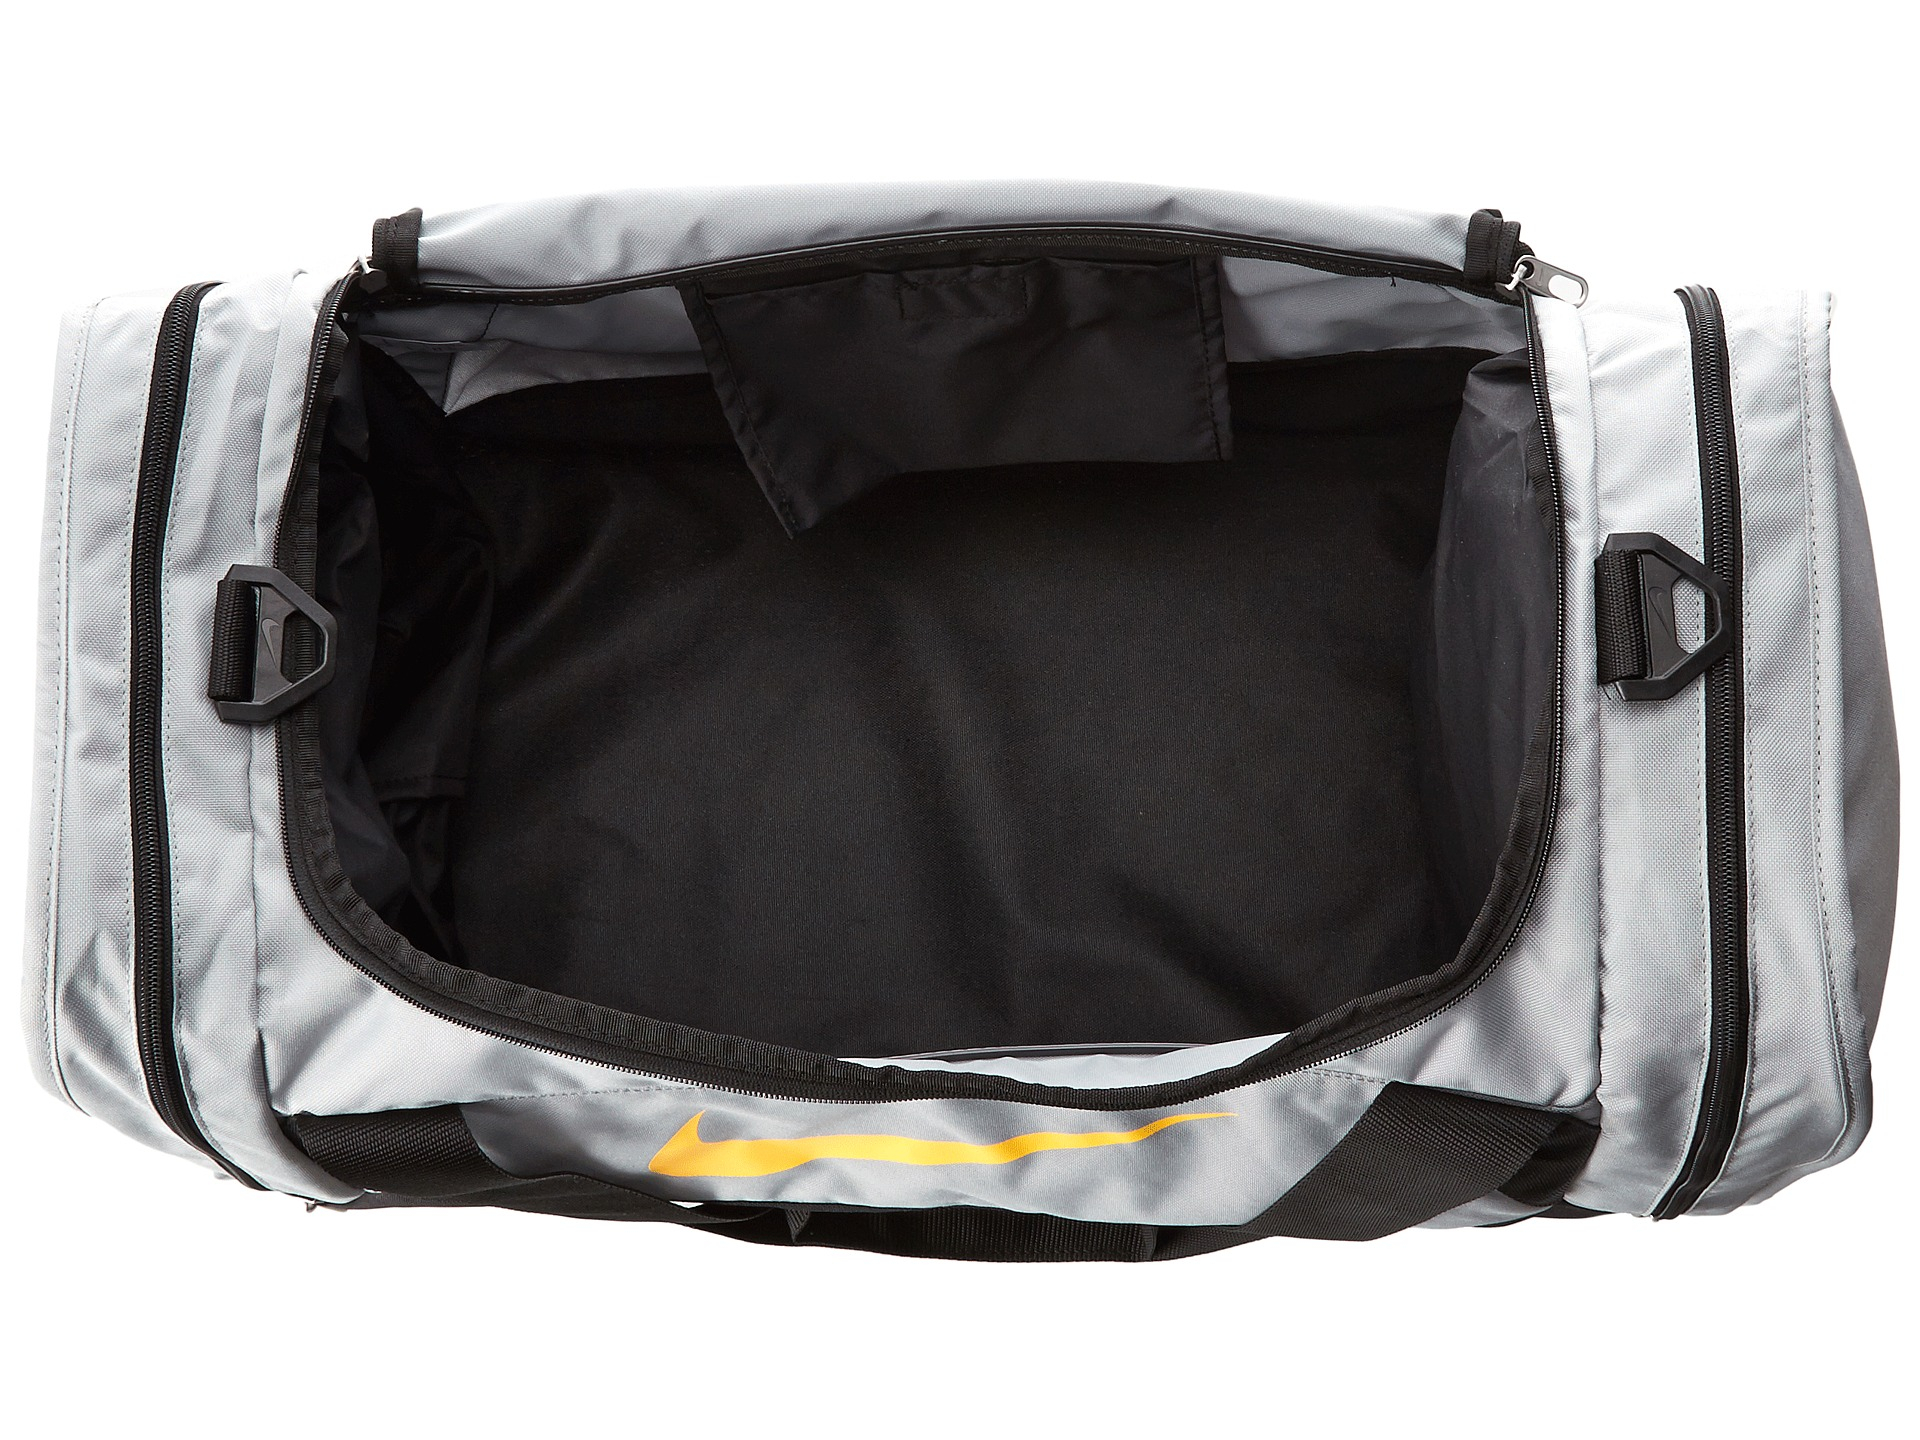 3e764aecd58 Nike Brasilia 6 Medium Duffle Bag check out 9260e 81893  Lyst - Nike  Brasilia 6 Medium Duffel in Black innovative design 6eeb1 fed42 ...